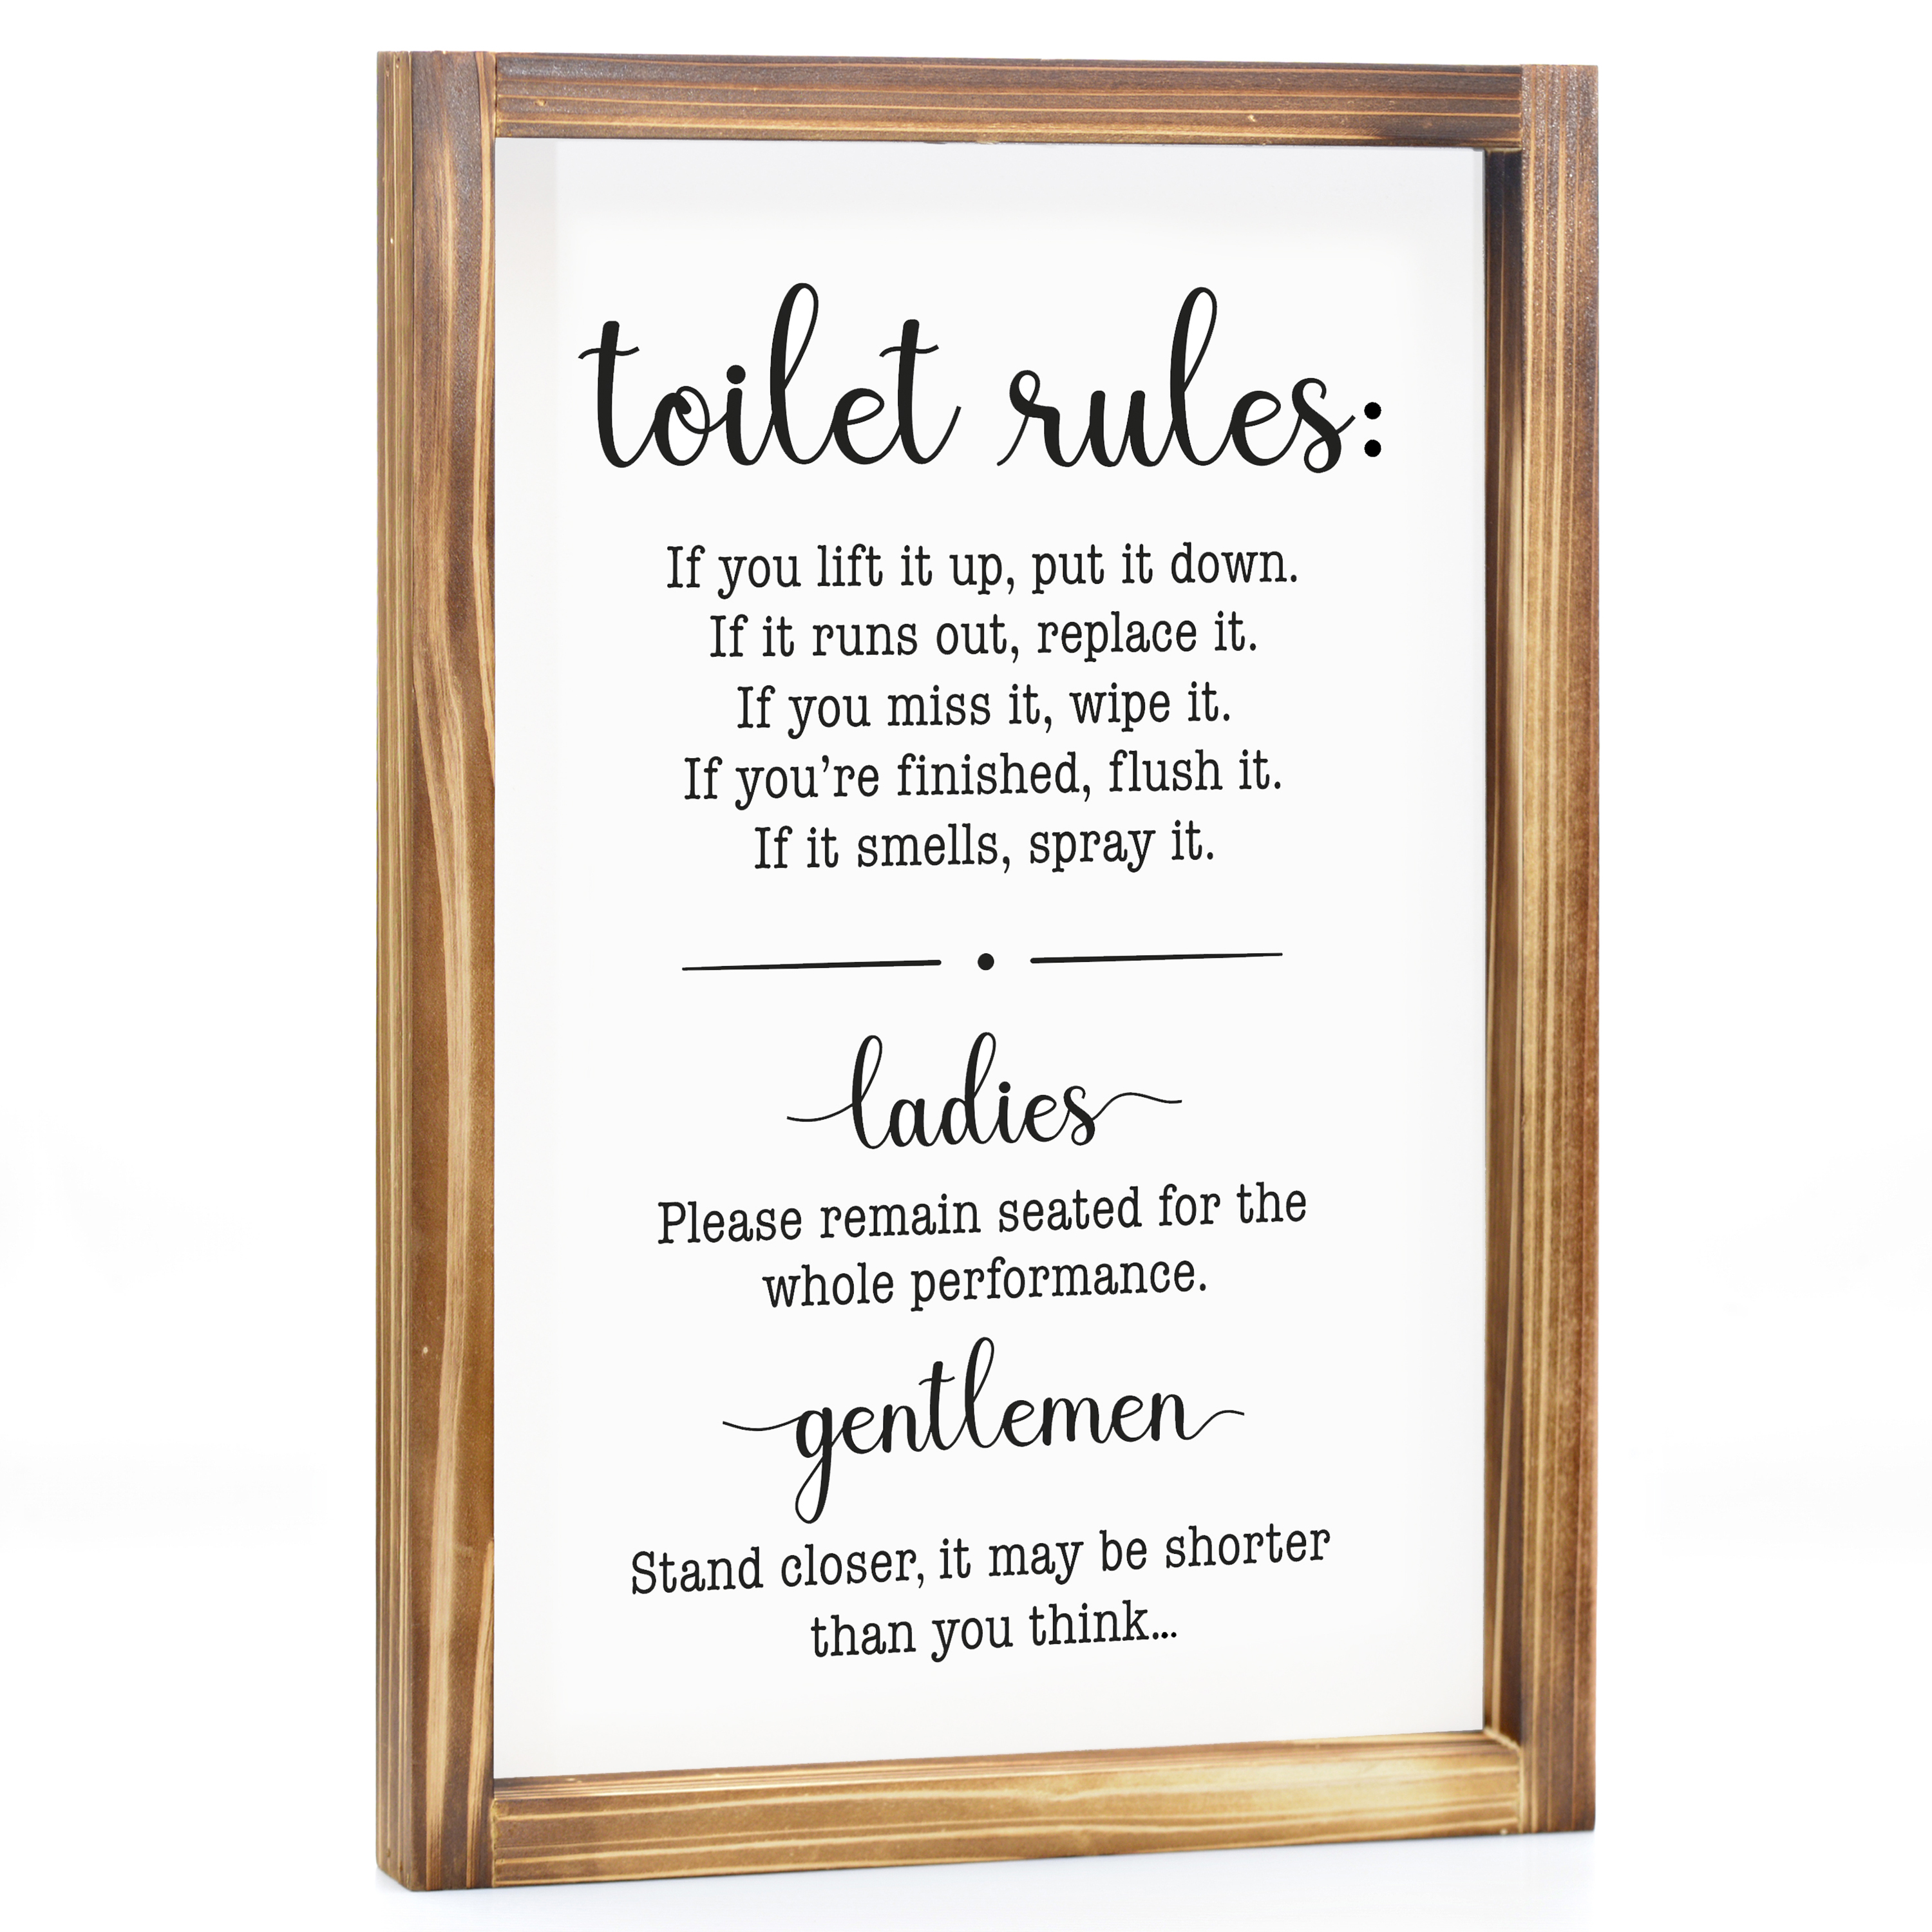 Toilet Rules Sign Funny Farmhouse Decor Sign Cute Guest Bathroom Decor Wall Art Rustic Home Decor Modern Farmhouse Sign For Bathroom Wall With Funny Quotes 11x16 Inch Walmart Com Walmart Com